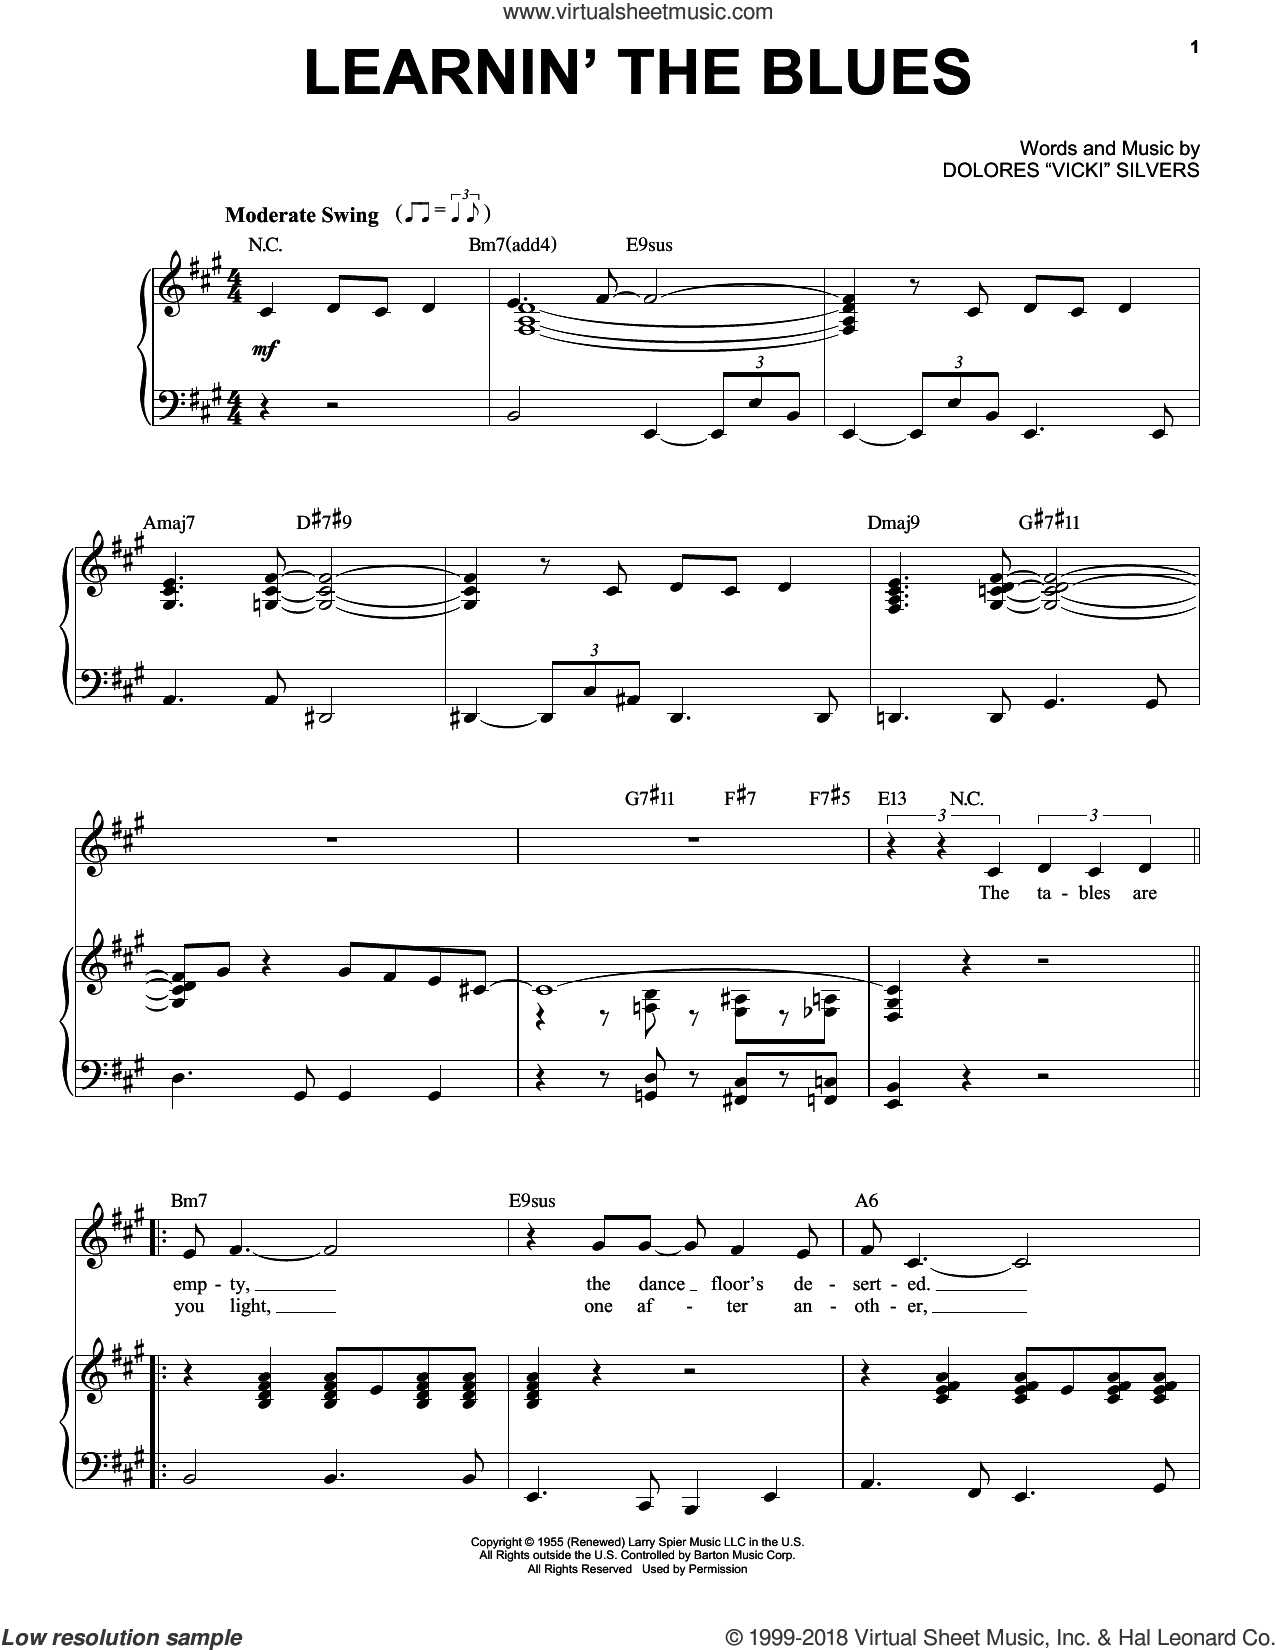 Learnin' The Blues sheet music for voice and piano by Frank Sinatra, Come Fly Away (Musical), Rosemary Clooney and Dolores Vicki Silvers, intermediate skill level